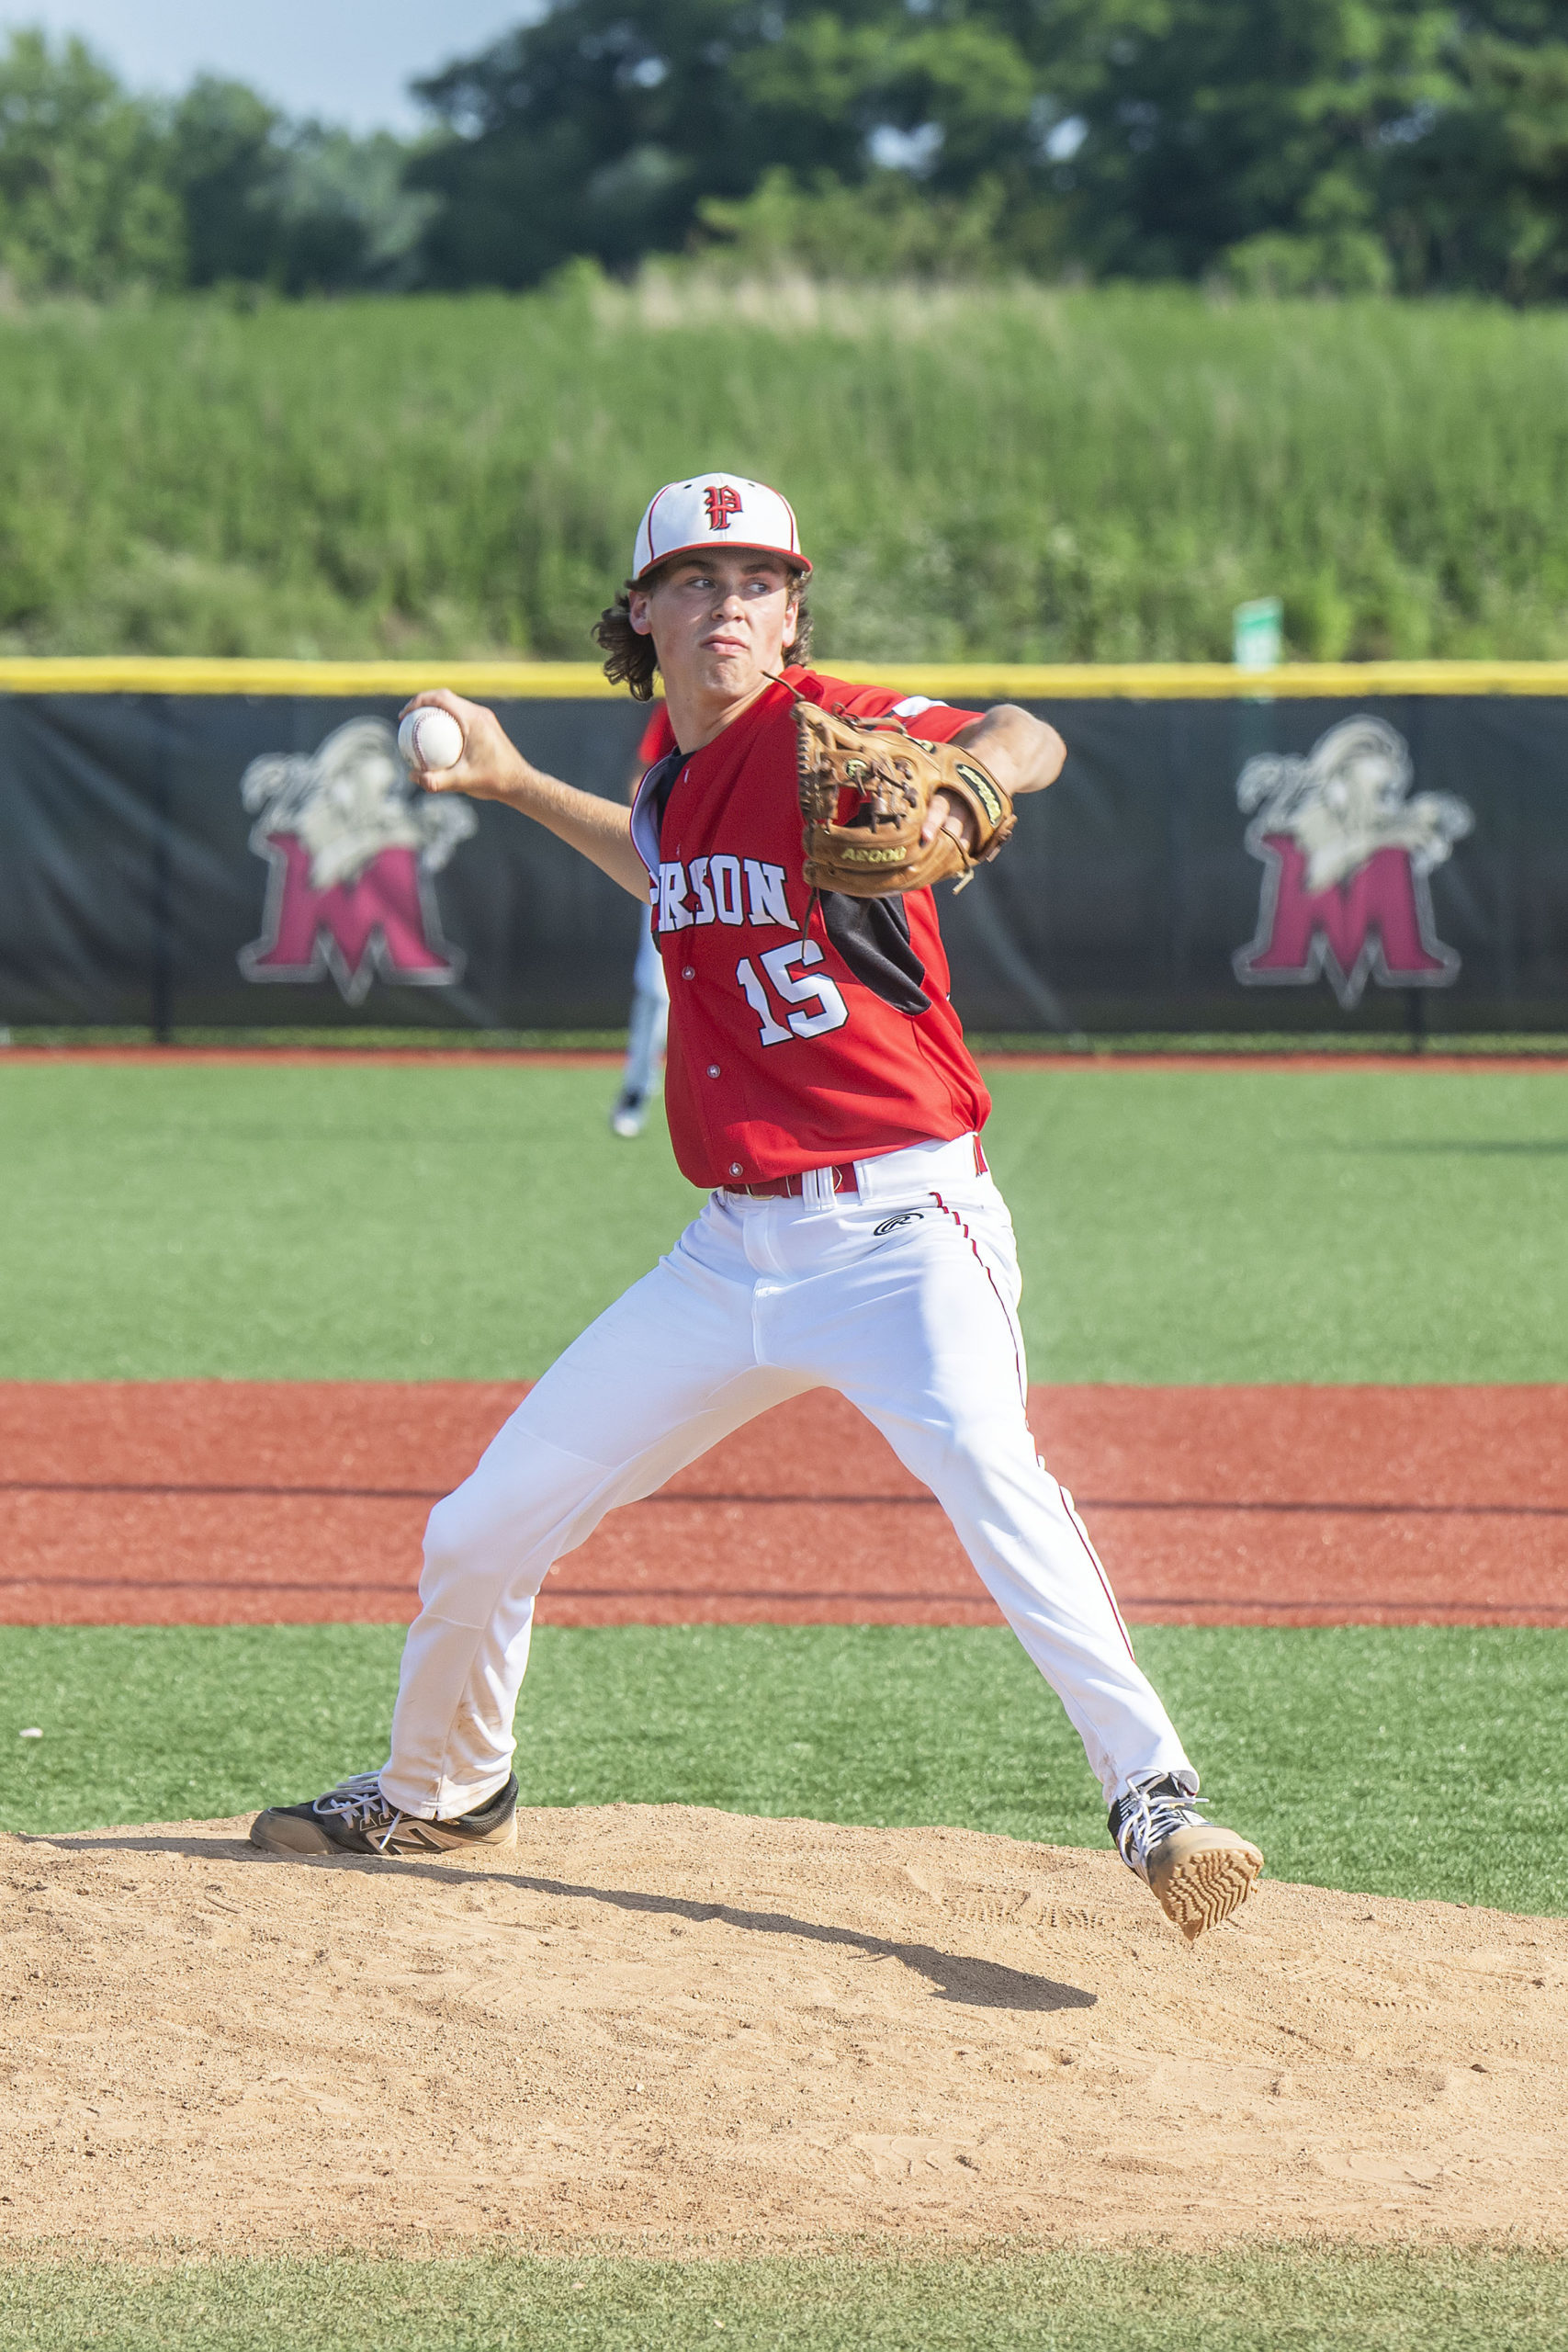 Daniel Labrozzi started on the mound for Pierson in Sunday's Long Island Championship at Mitchel Field in Hempstead.